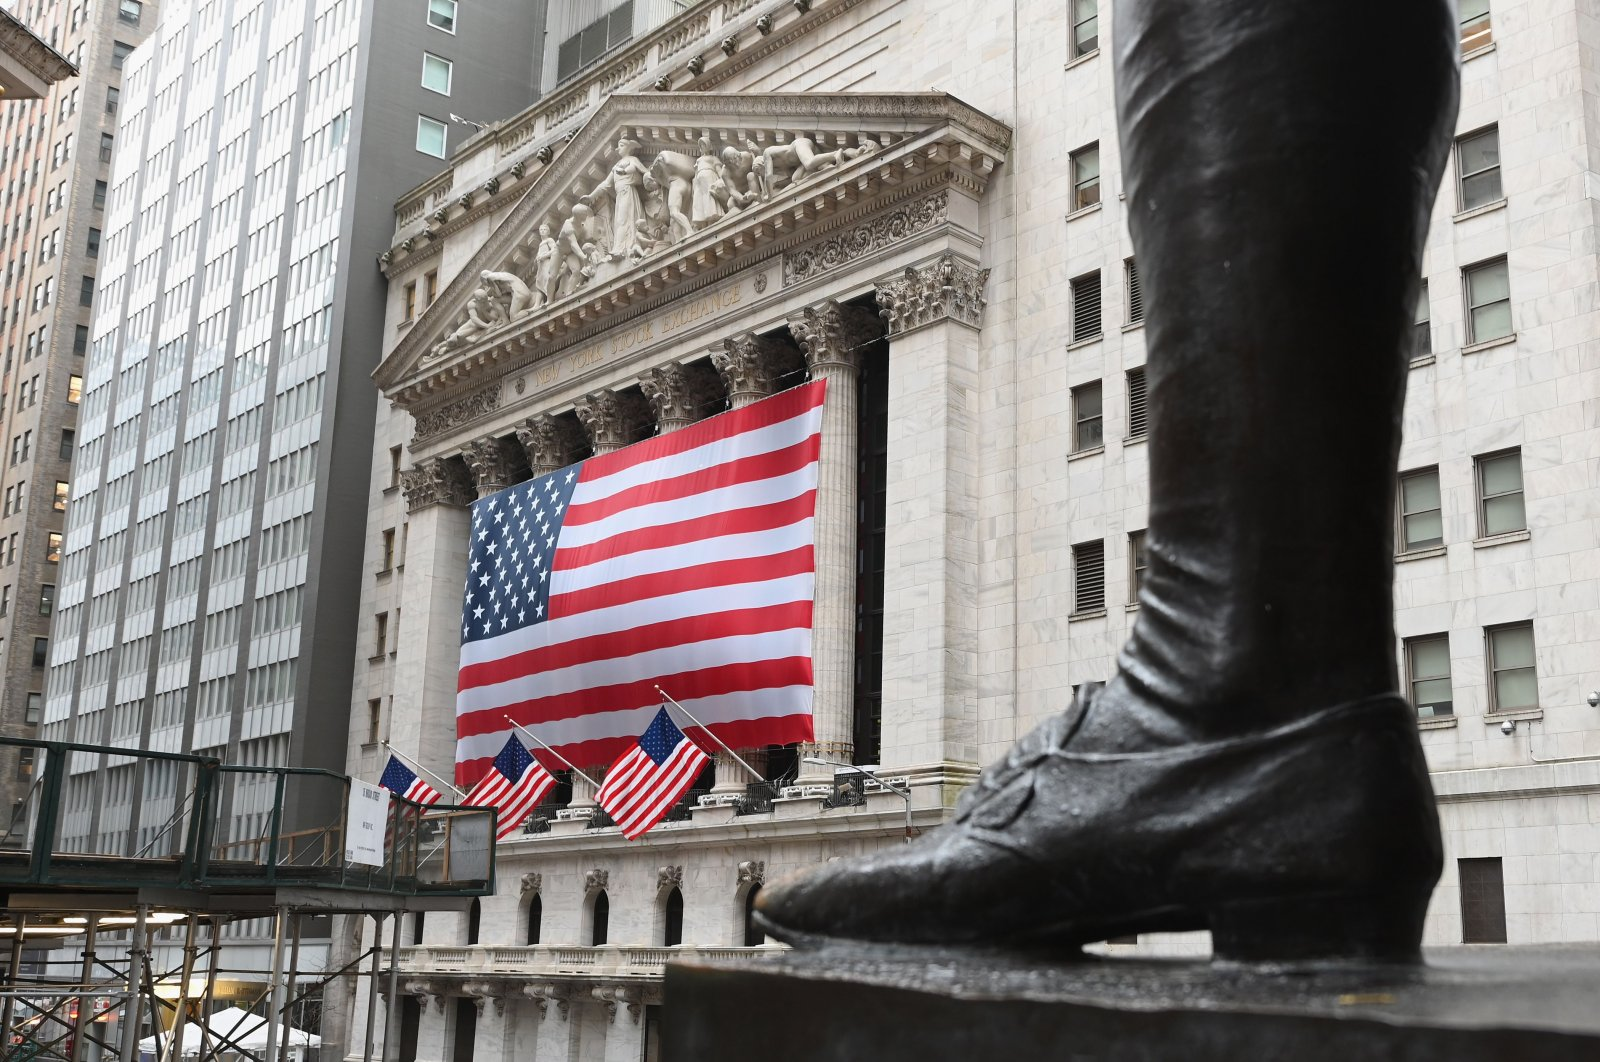 The New York Stock Exchange is seen on Wall Street in New York City, March 23, 2020. (AFP Photo)